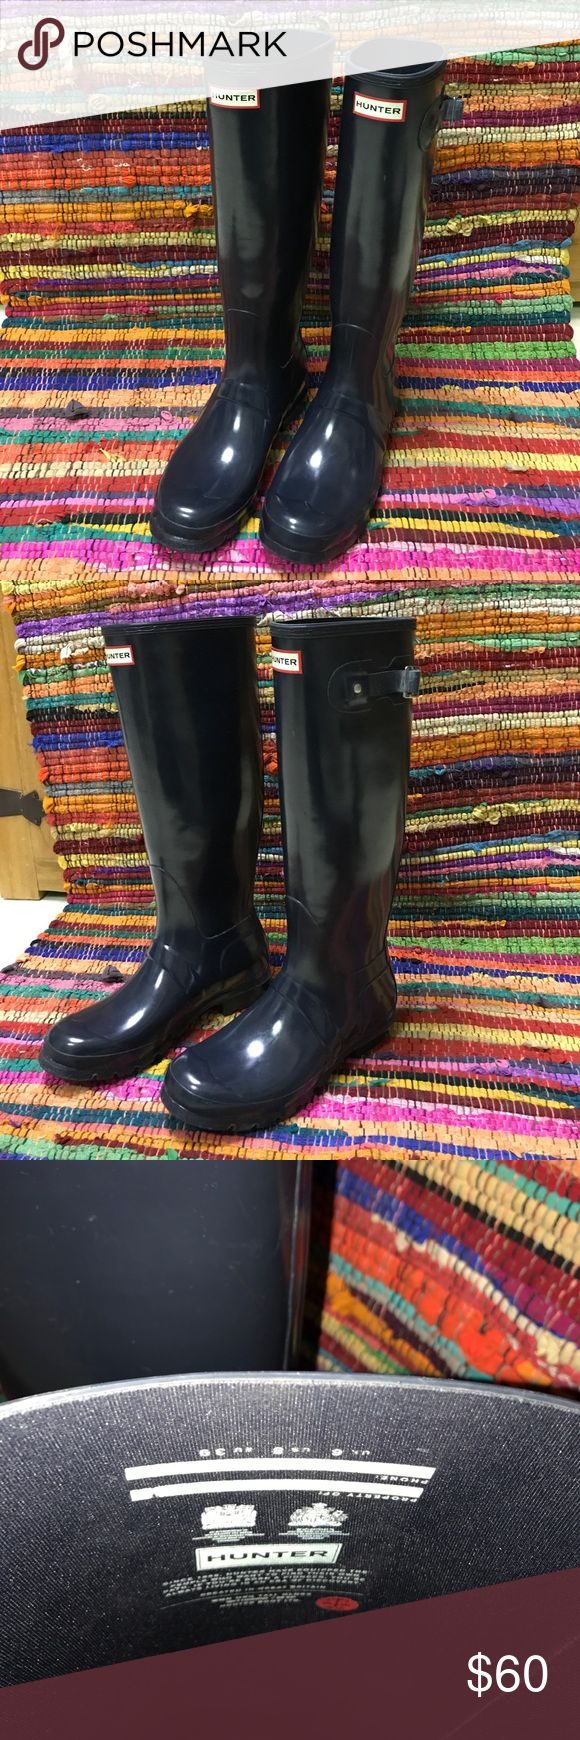 Hunter Wellies Size 8 Hunter brand Wellington boots in Shiny Navy. Moderate visible wear. Hunter Boots Shoes Winter & Rain Boots